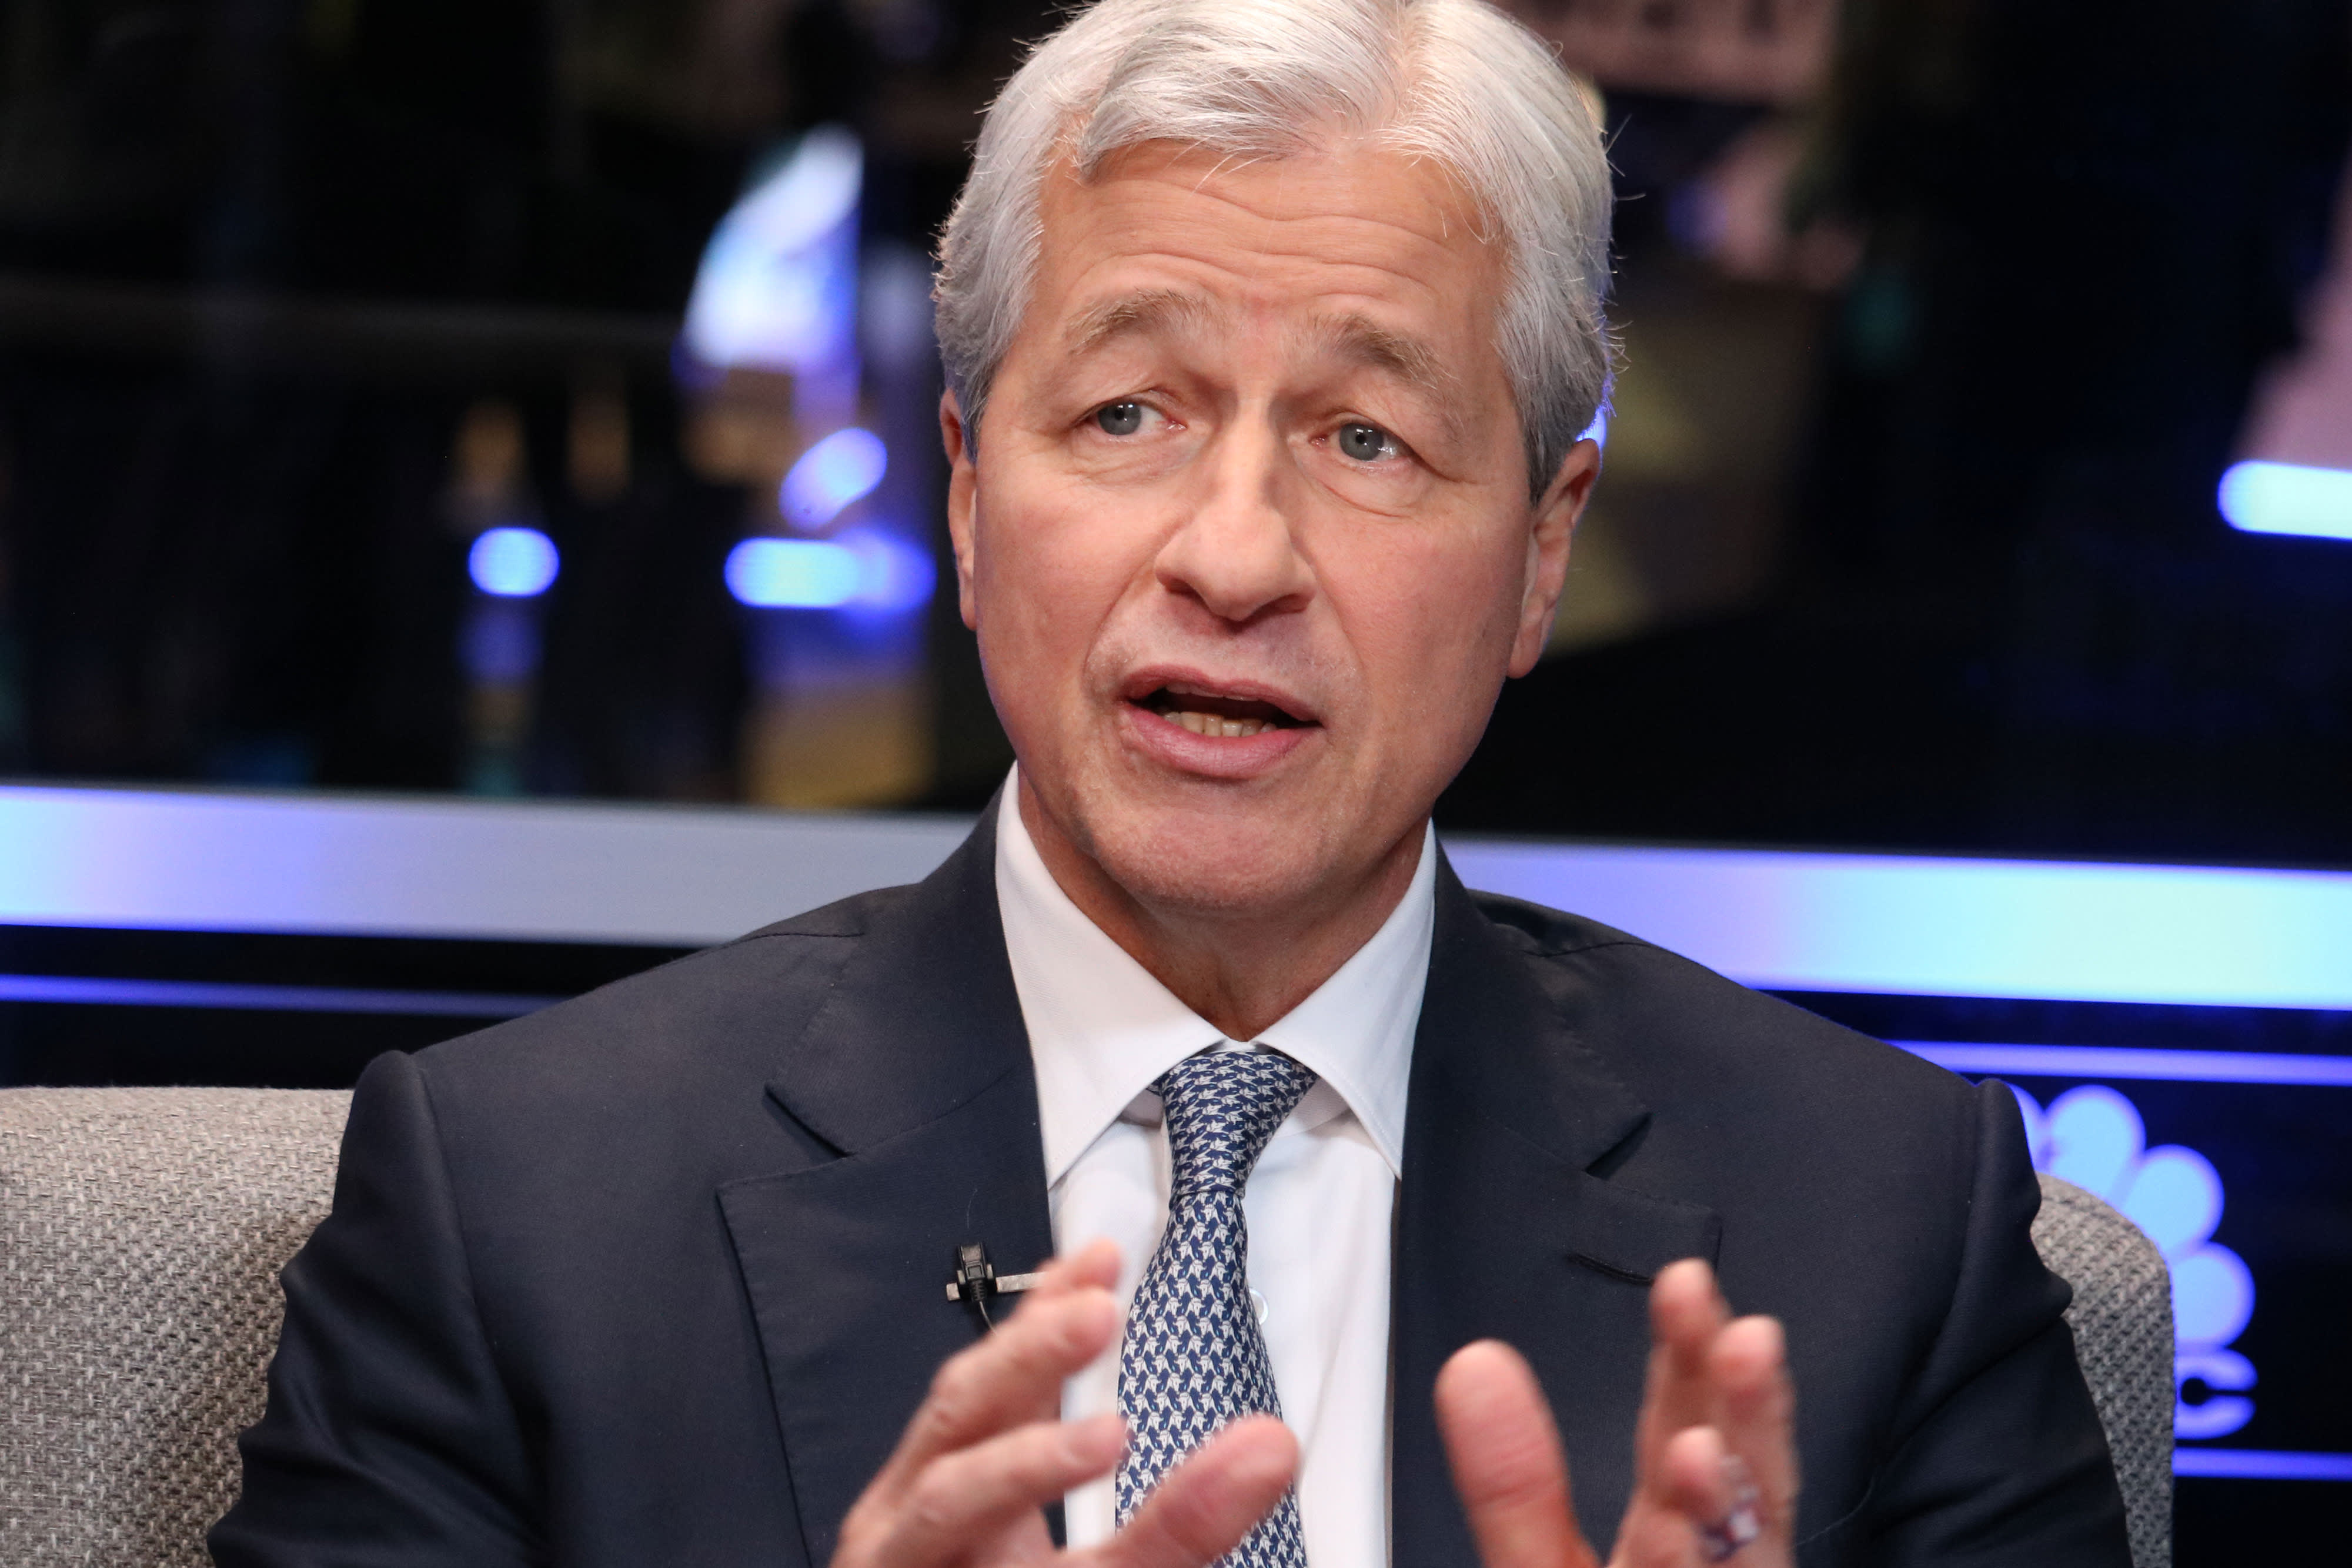 JP Morgan posted an earnings beat, but the bank's stock falls on lowered interest forecast